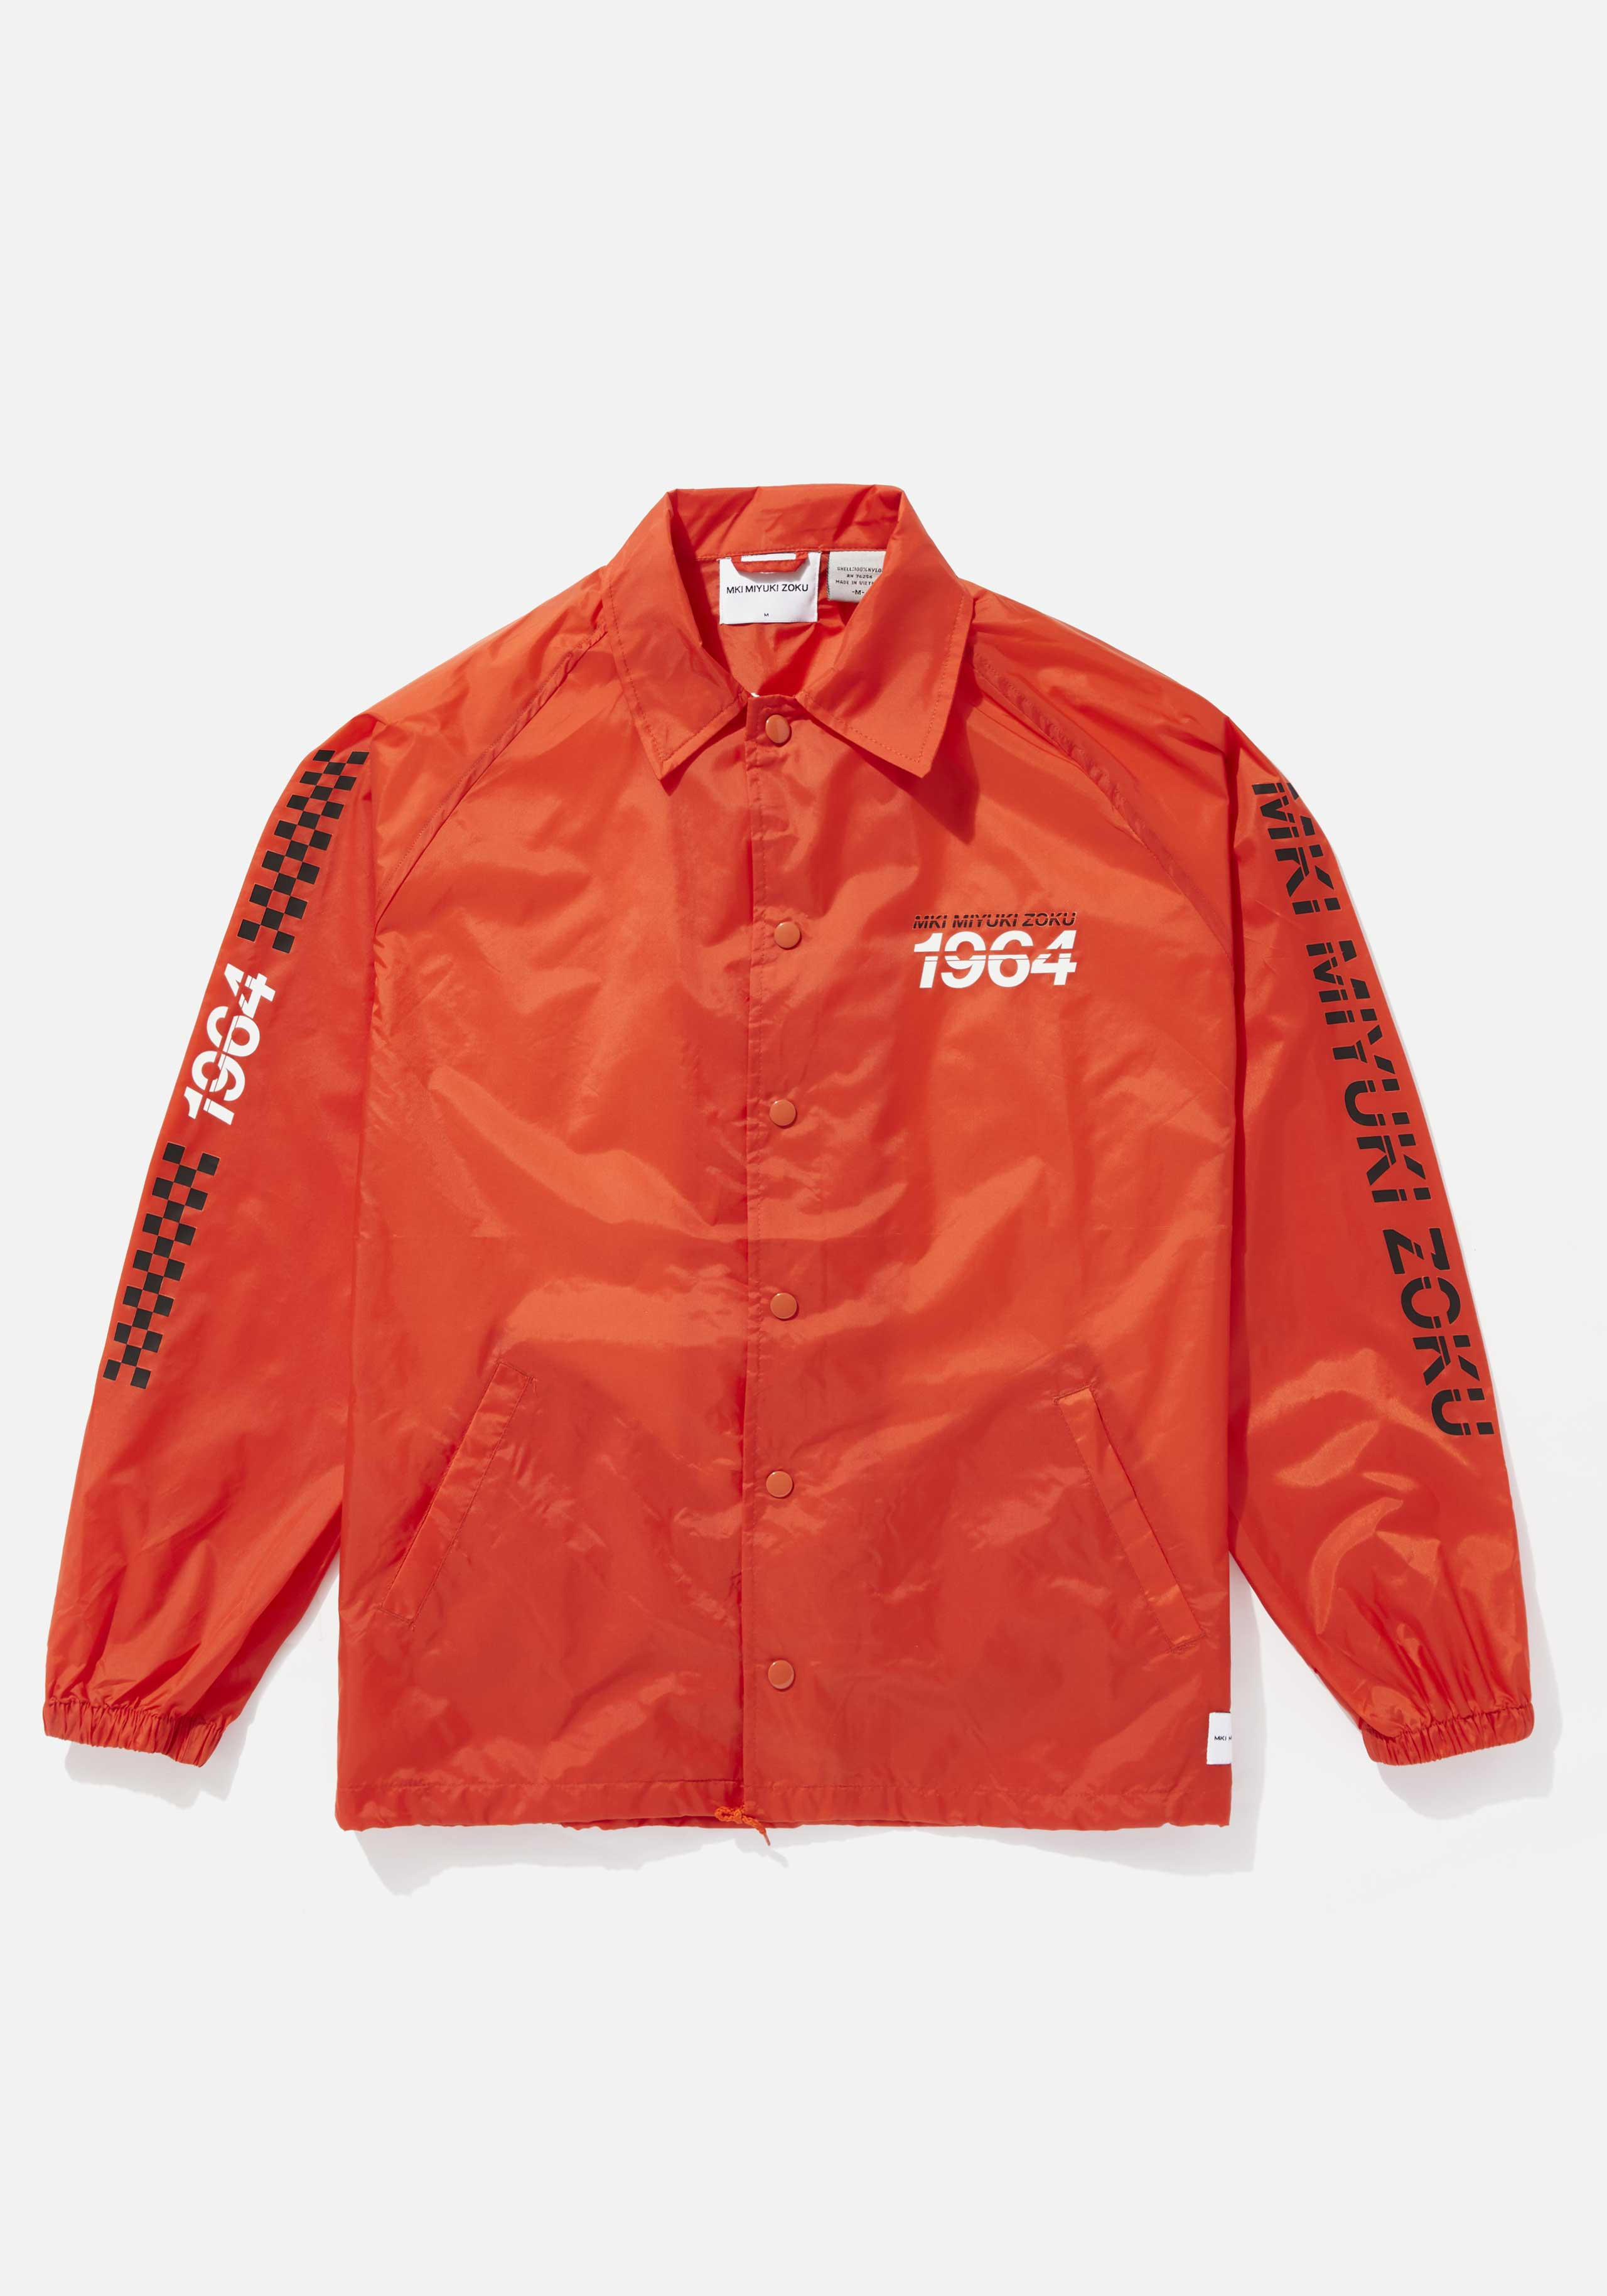 mki racing coach jacket 1